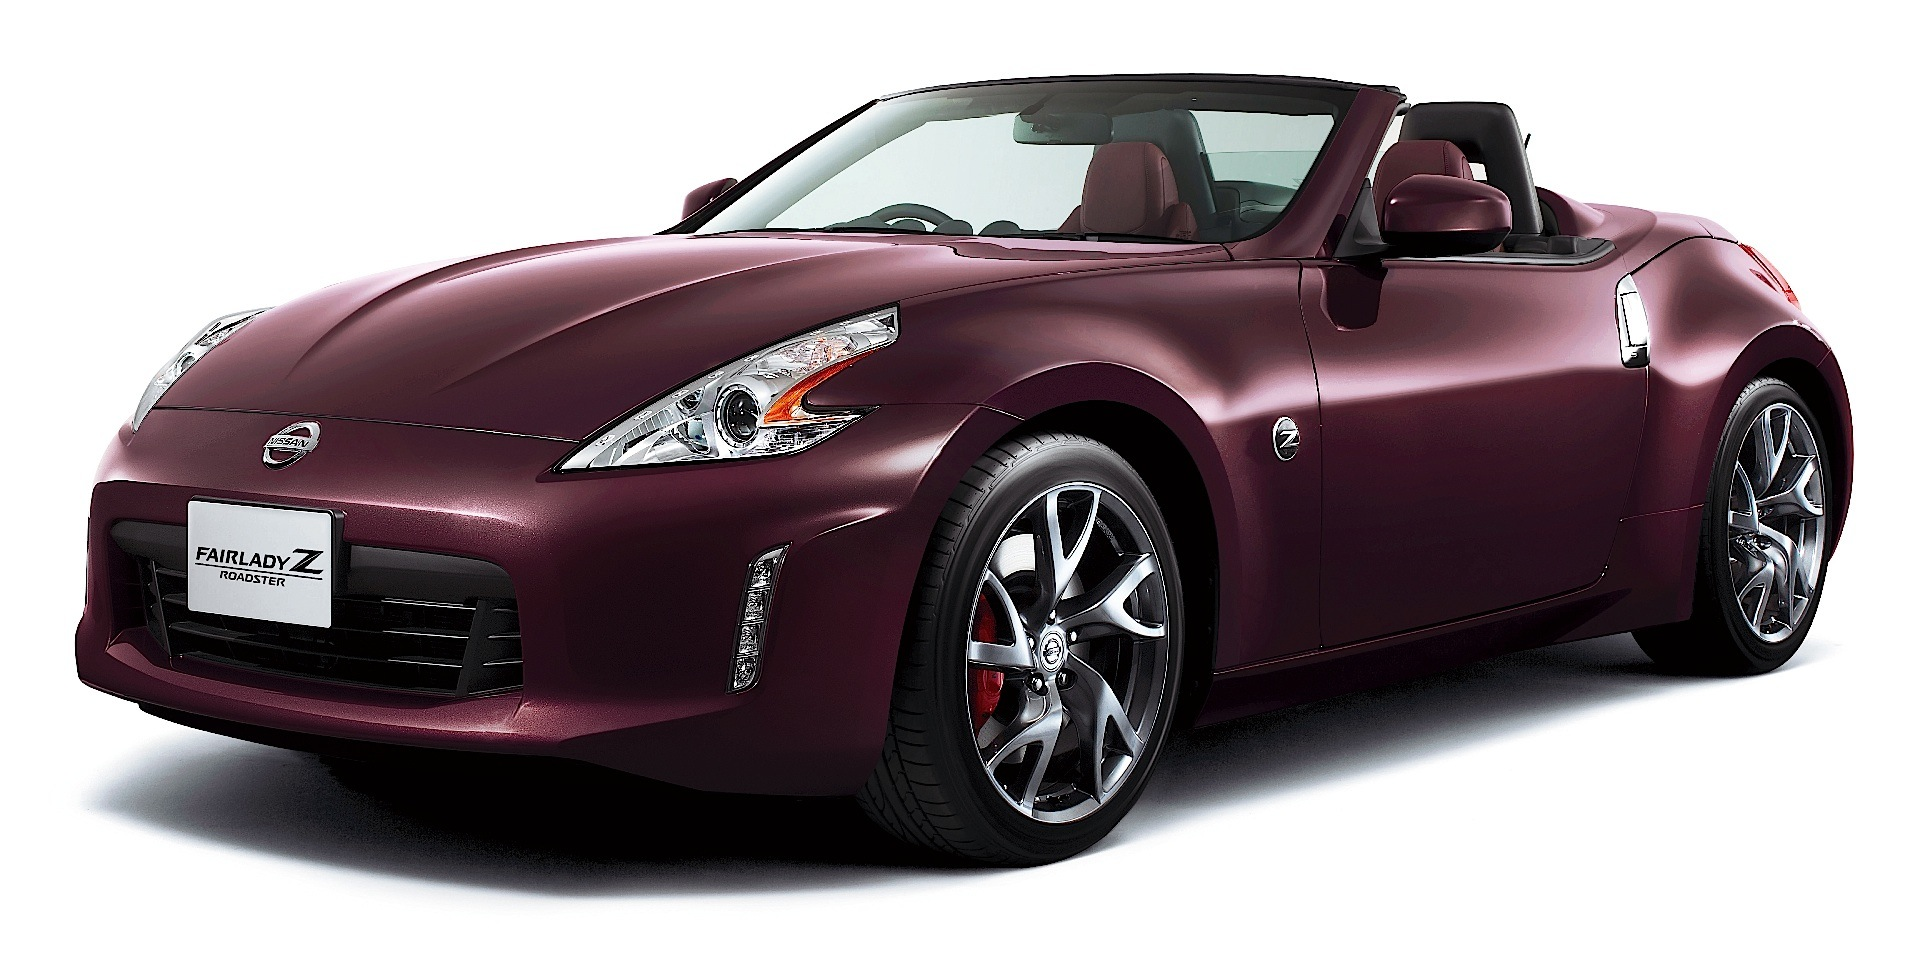 nissan 370z roadster specs 2012 2013 2014 2015 2016 2017 2018 autoevolution. Black Bedroom Furniture Sets. Home Design Ideas